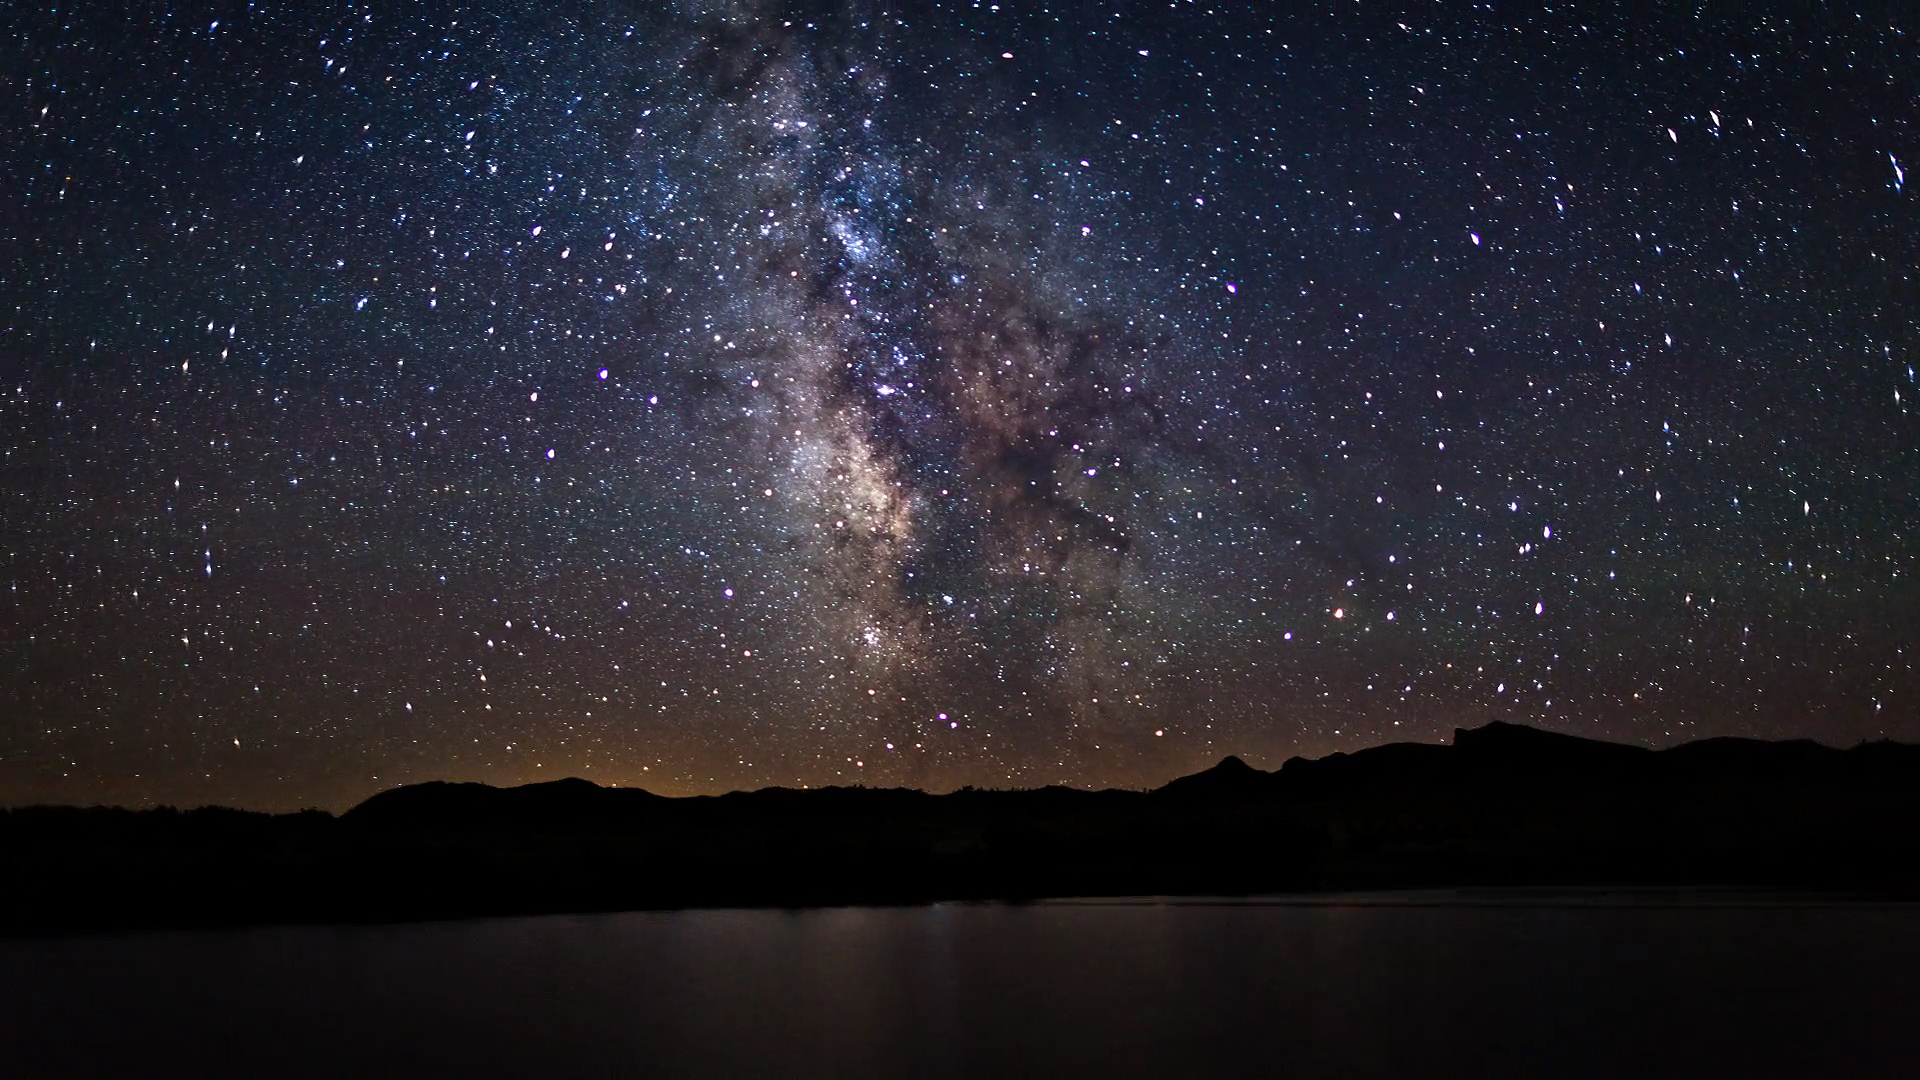 the cosmos hd wallpaper background image 1920x1080 id 153316